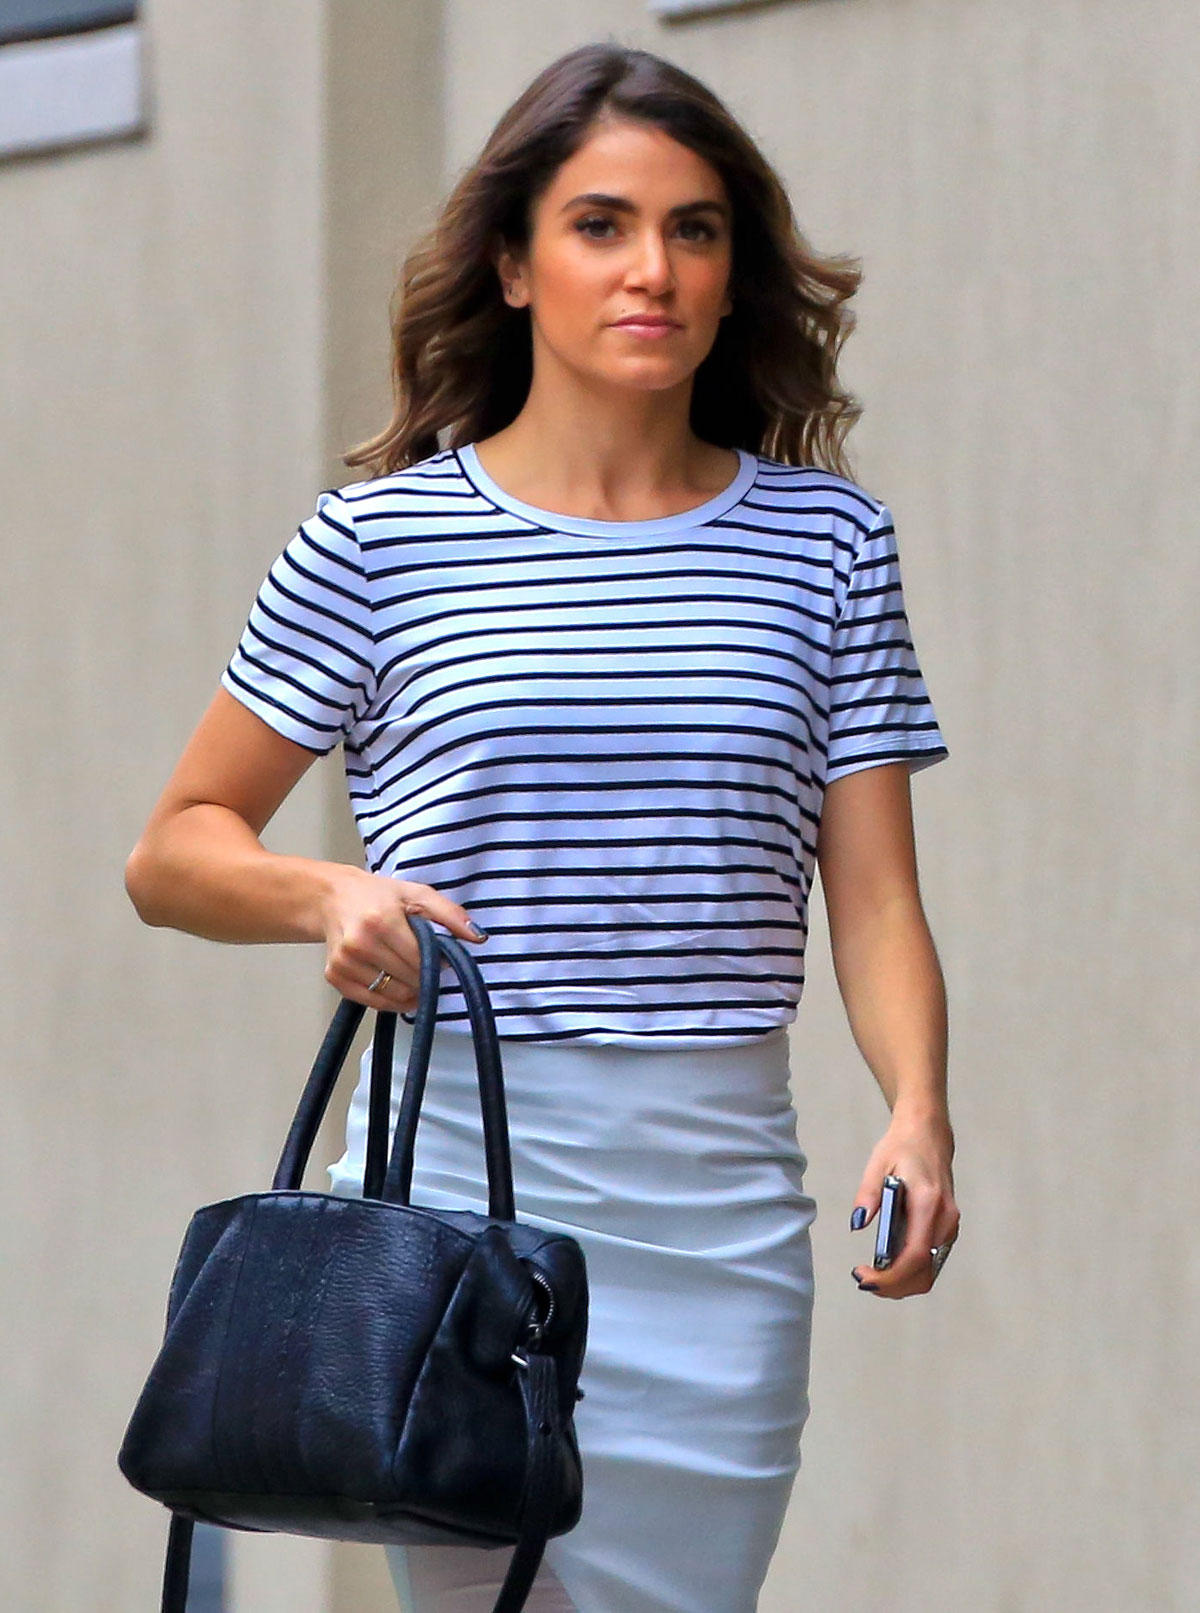 Nikki Reed out and about candids in Hollywood